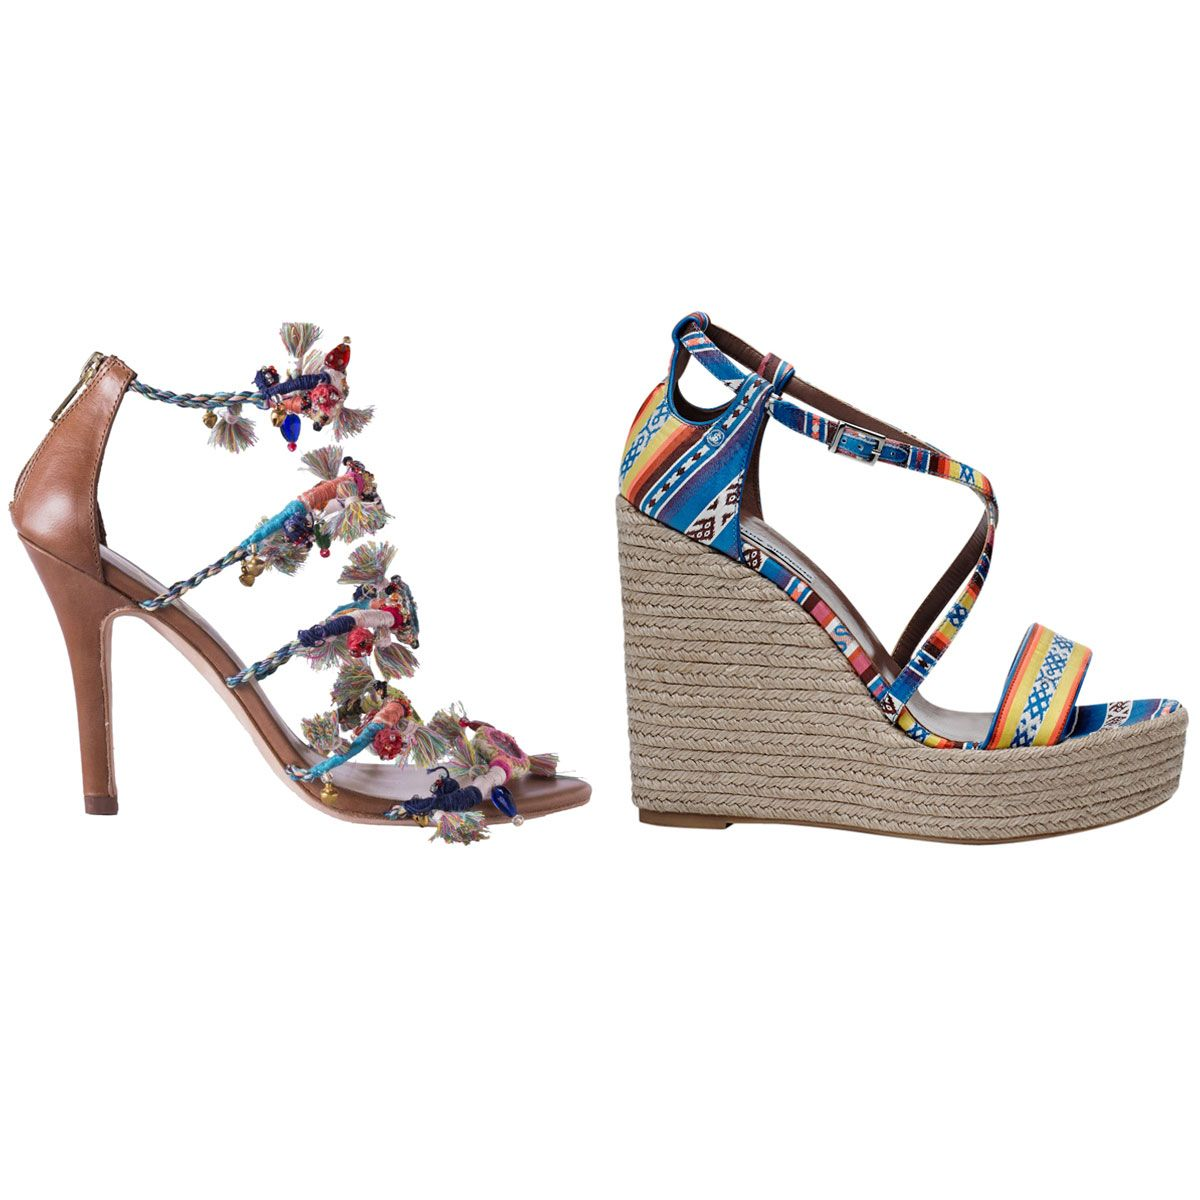 TheLIST: 10 Sandals to Put Spring in Your Step